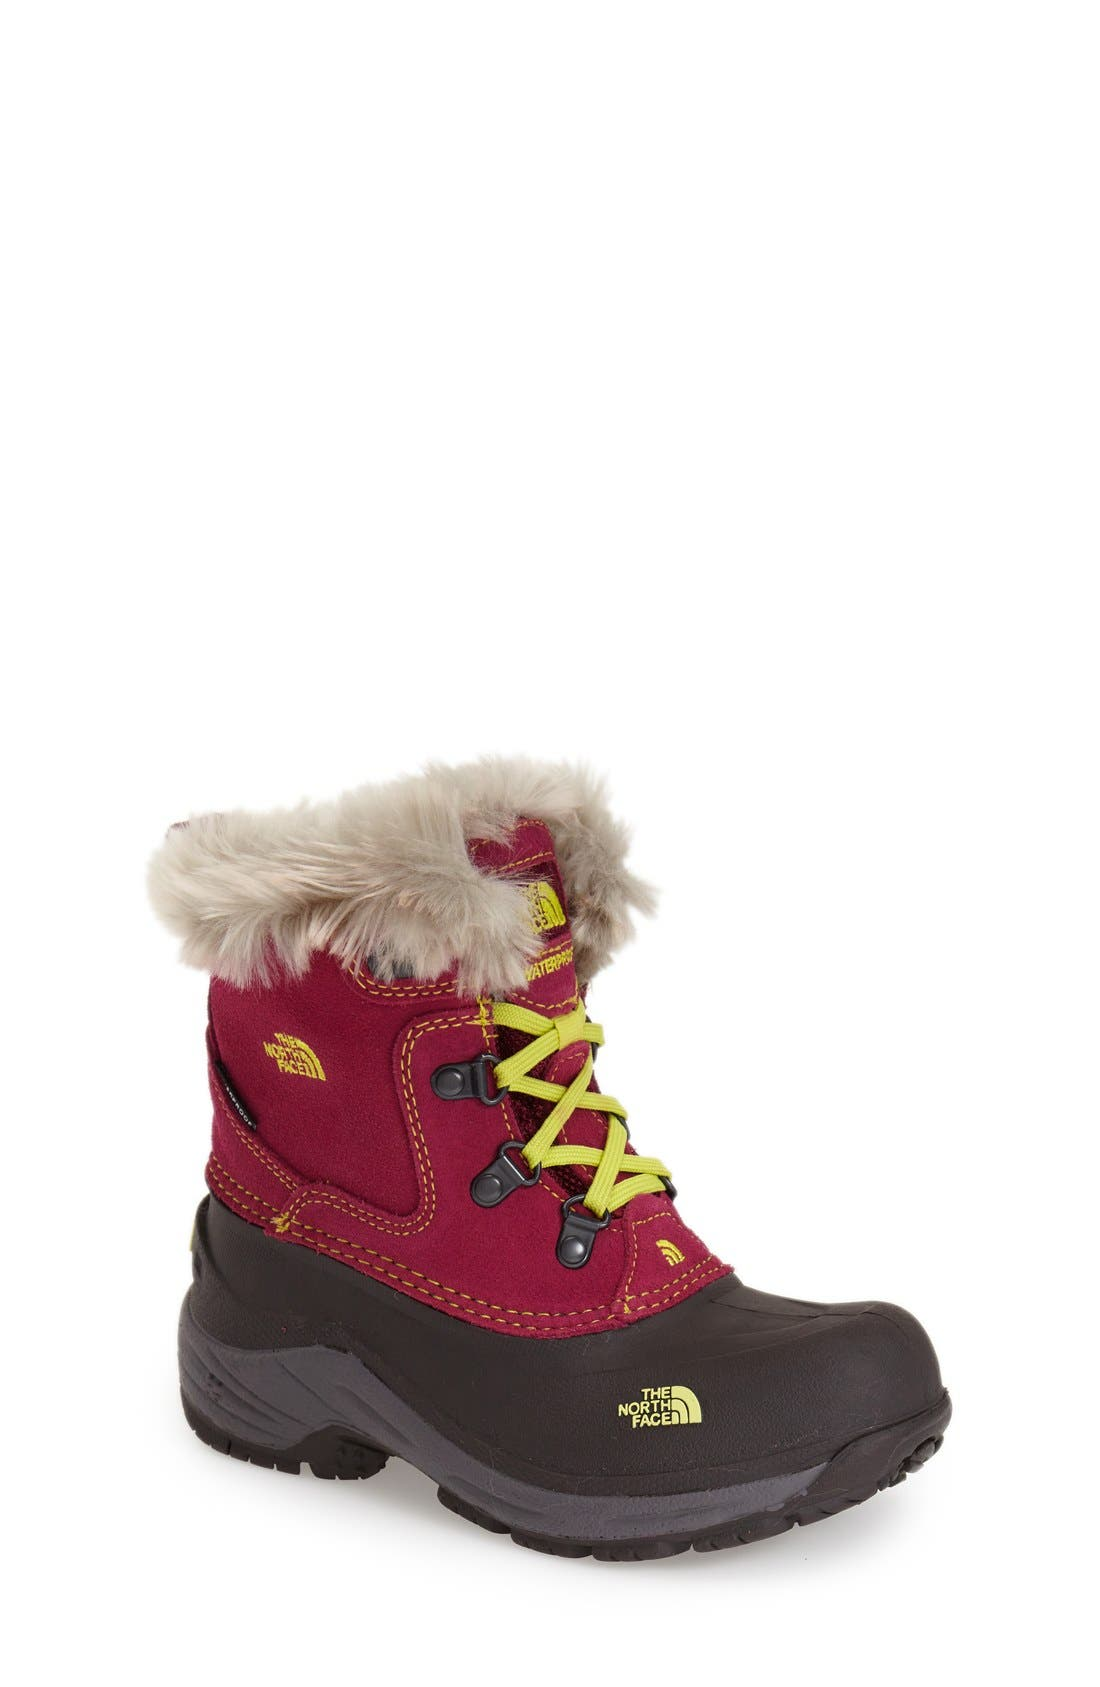 Alternate Image 1 Selected - The North Face 'McMurdo' Boot (Toddler, Little Kid & Big Kid)